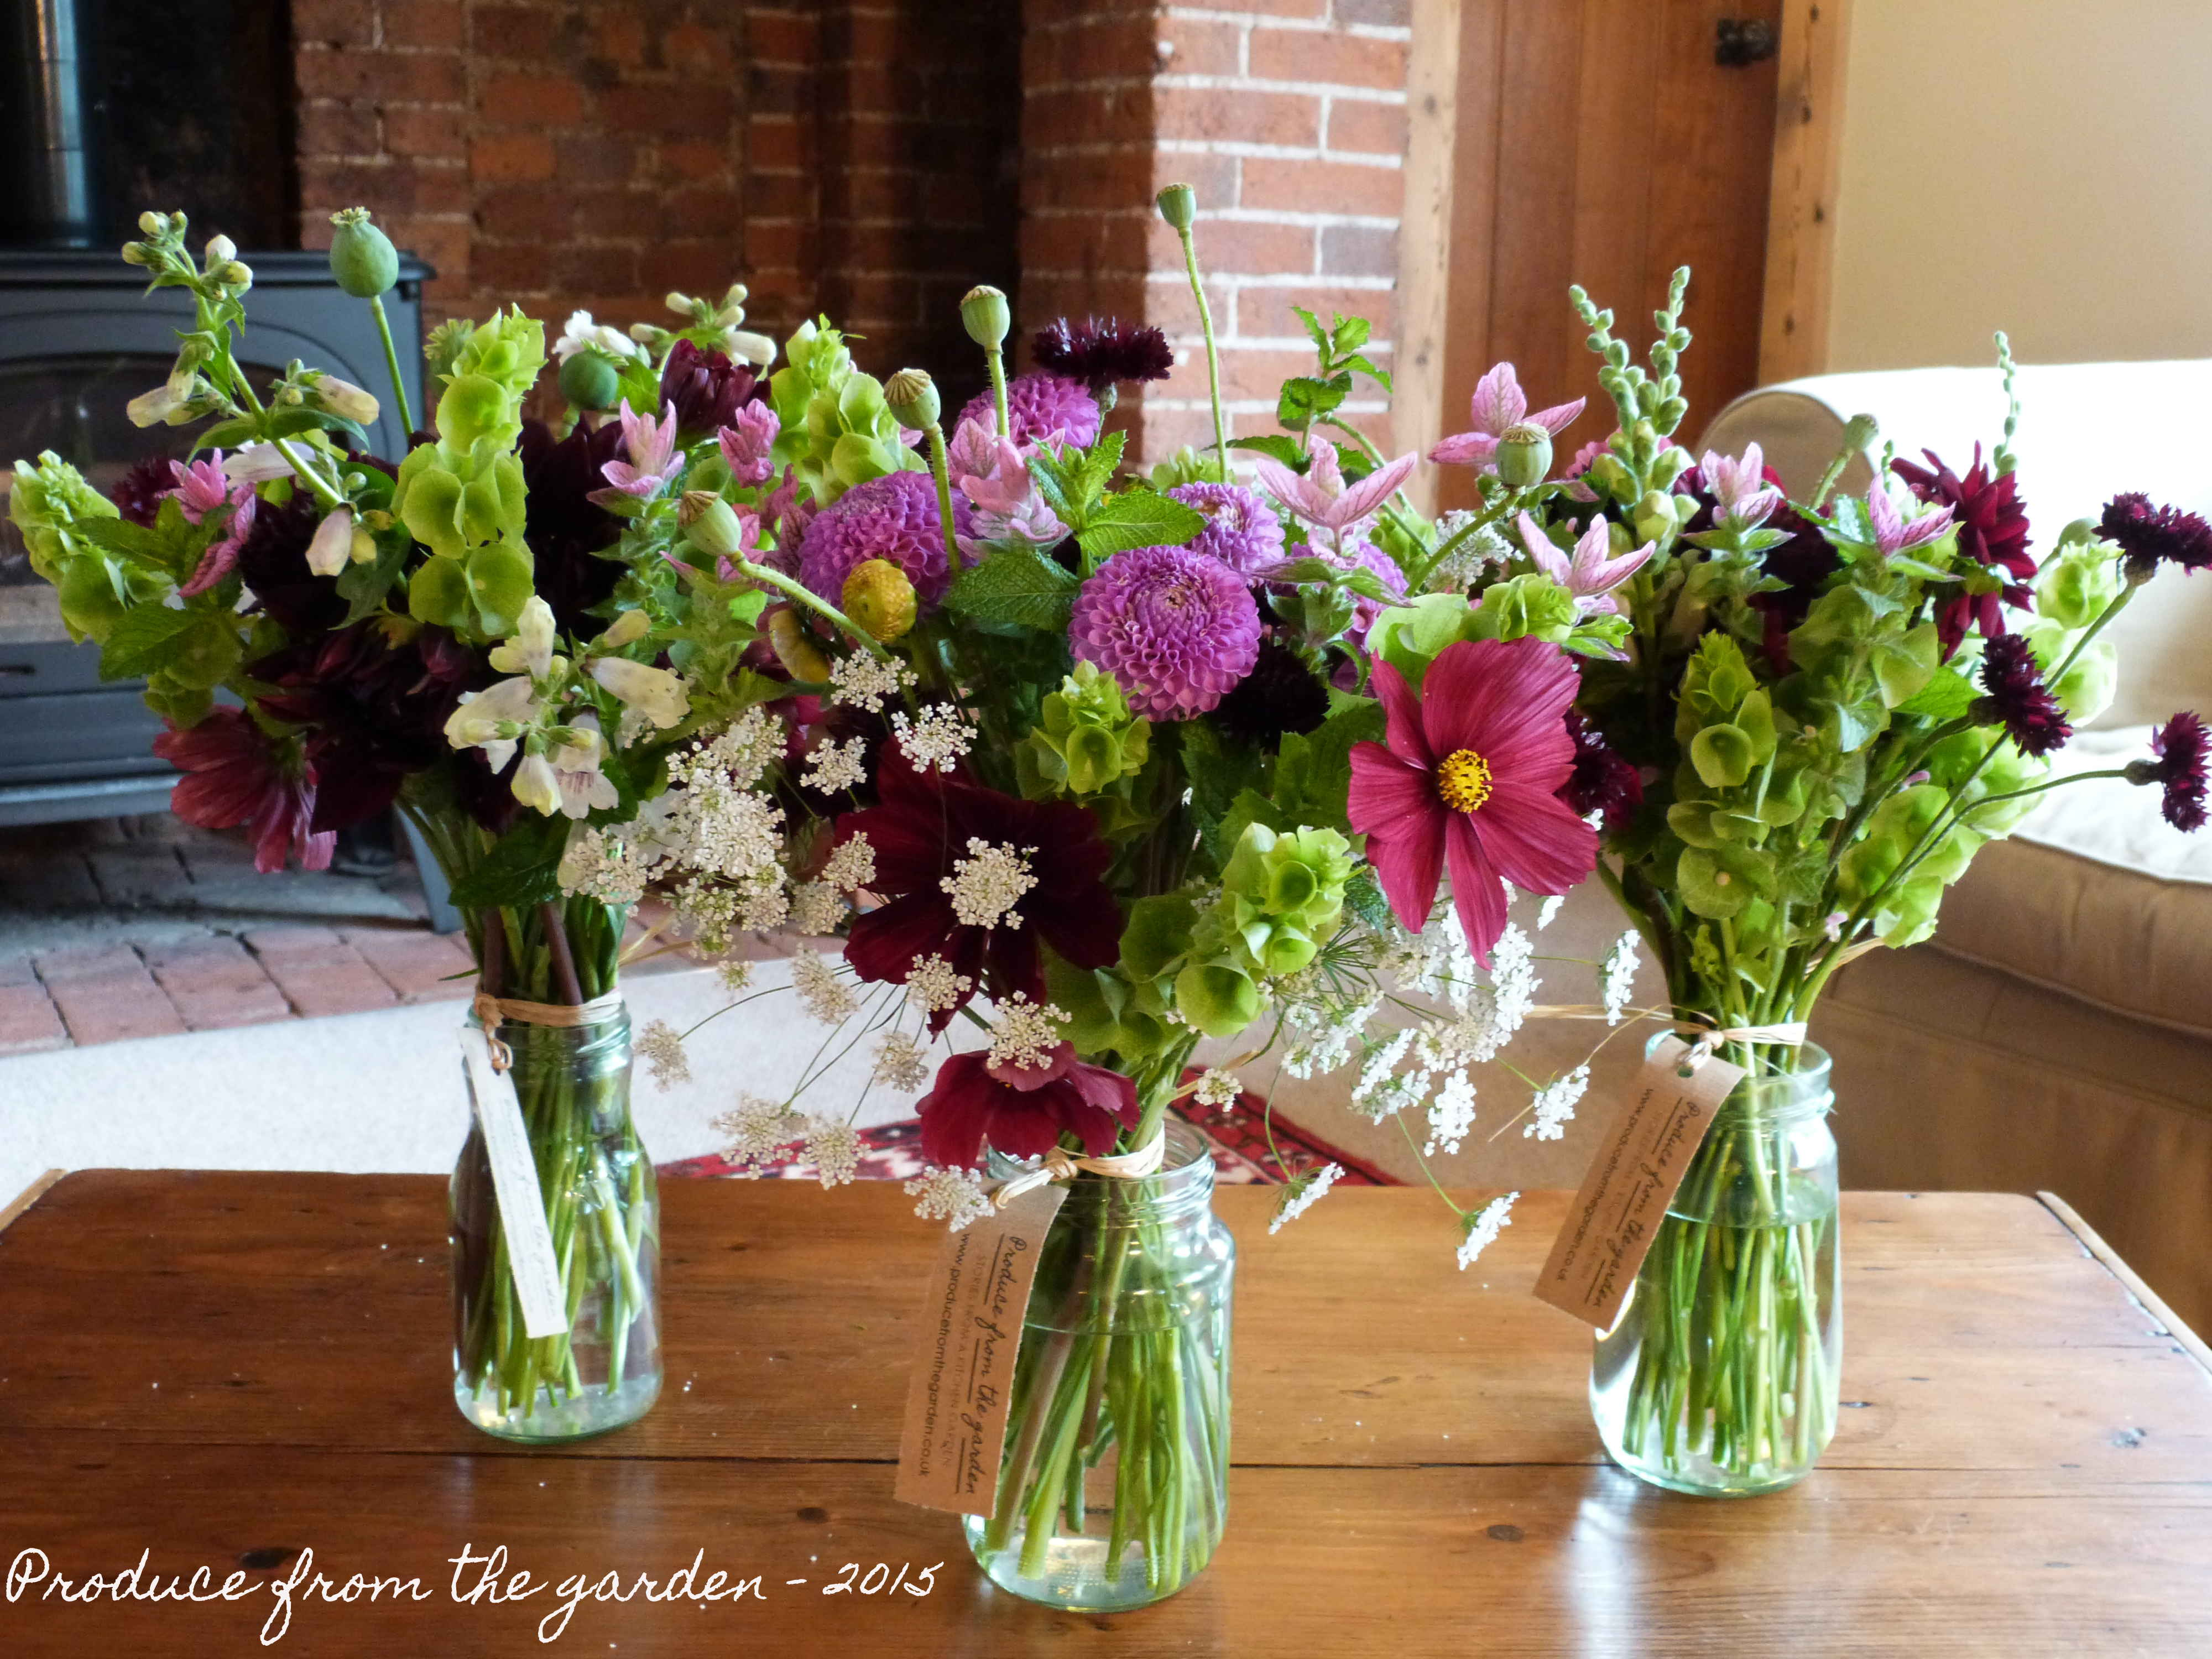 Flowers In Jam Jars Produce From The Garden